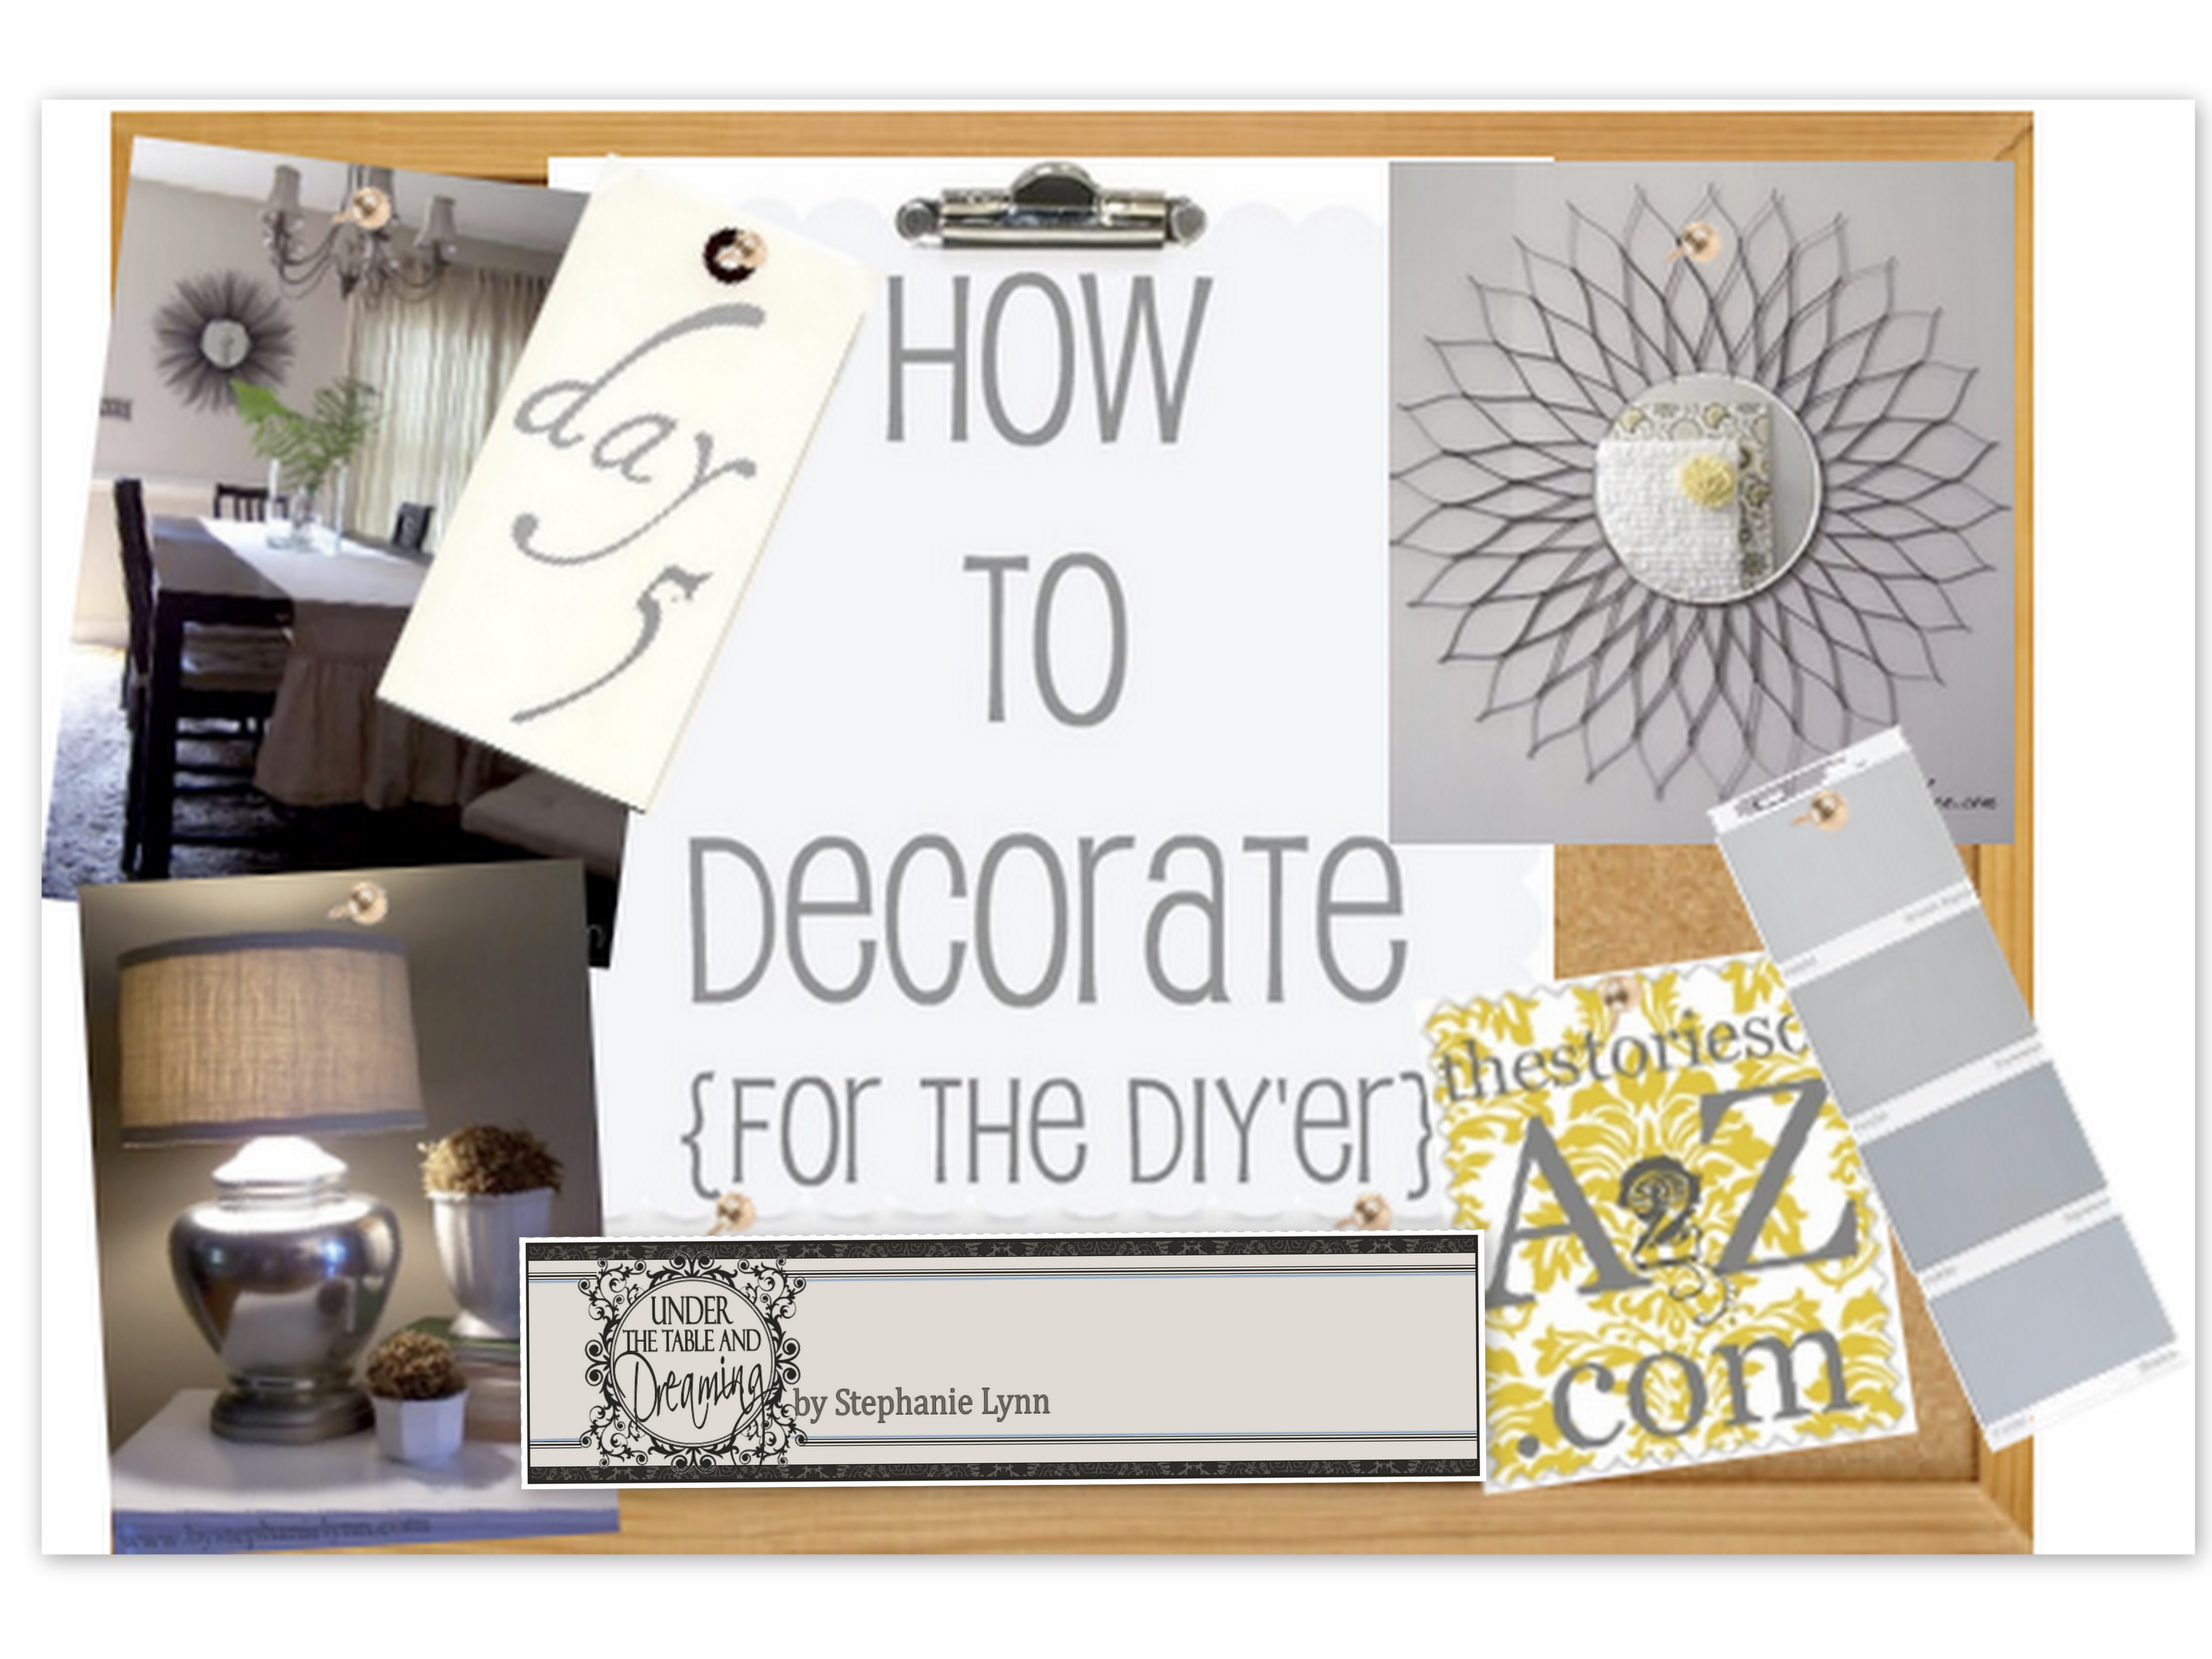 How To Decorate Series {day 5}: 4 Practical Tips By Under